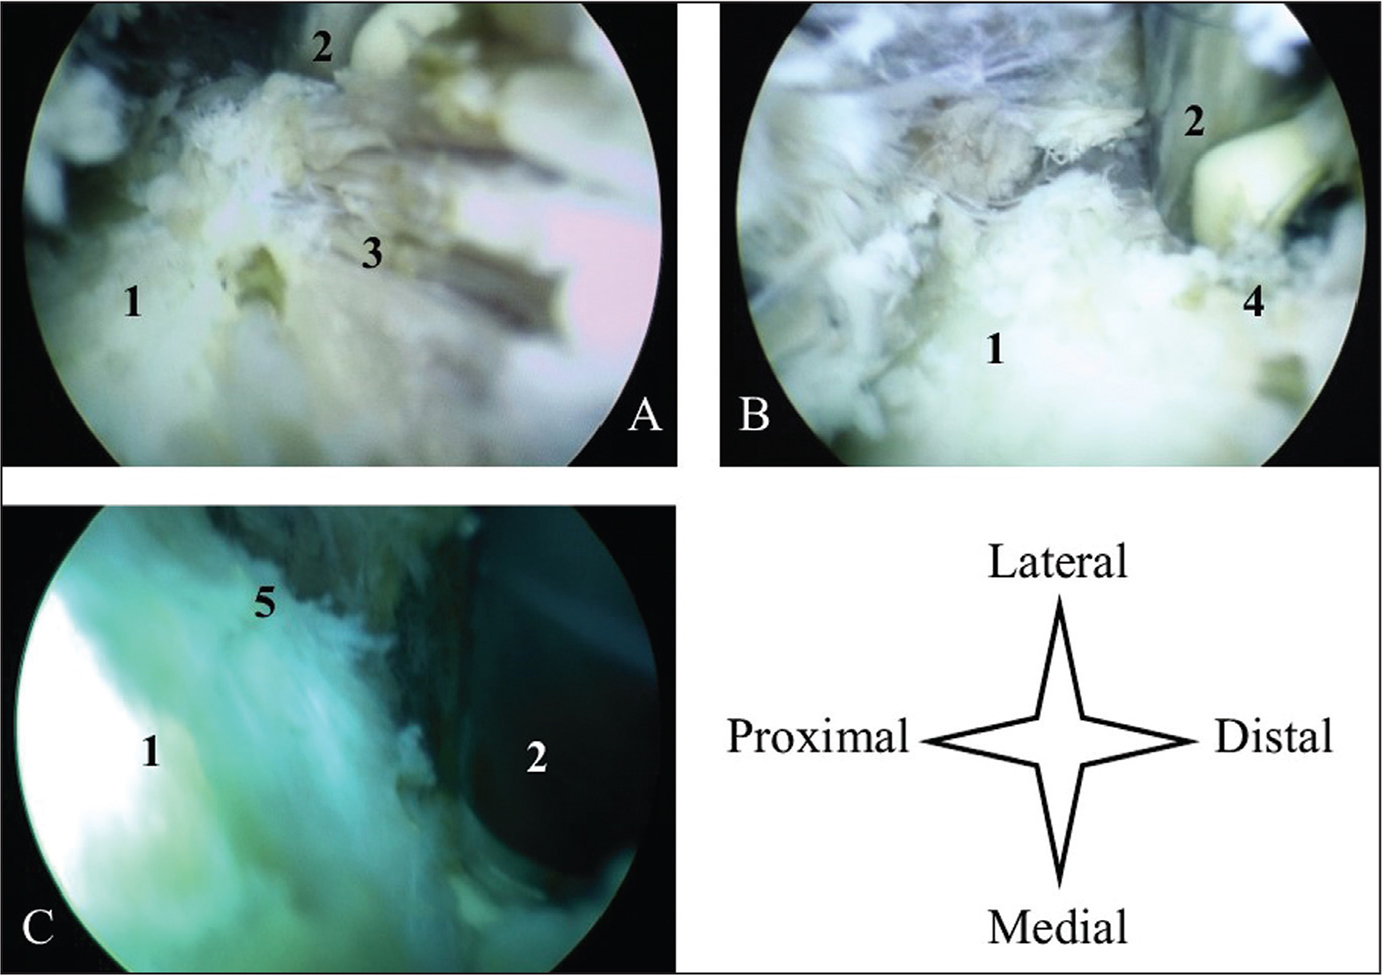 Intraoperative arthroscopic photograph of the extensor carpi radialis brevis disinsertion in a right elbow in lateral decubitus. Extensor carpi radialis brevis origin just before disinsertion (A). Arthroscopic photograph of the extensor carpi radialis brevis origin after disinsertion (B). Arthroscopic photograph showing view just after the extensor carpi radialis brevis disinsertion (C). Abbreviations: 1, posterior aspect of the lateral epicondyle; 2, radiofrequency probe; 3, extensor carpi radialis brevis; 4, extensor carpi radialis brevis footprint after disinsertion; 5, lateral crest of the epicondyle visible after extensor carpi radialis brevis disinsertion with a distal posterolateral look.